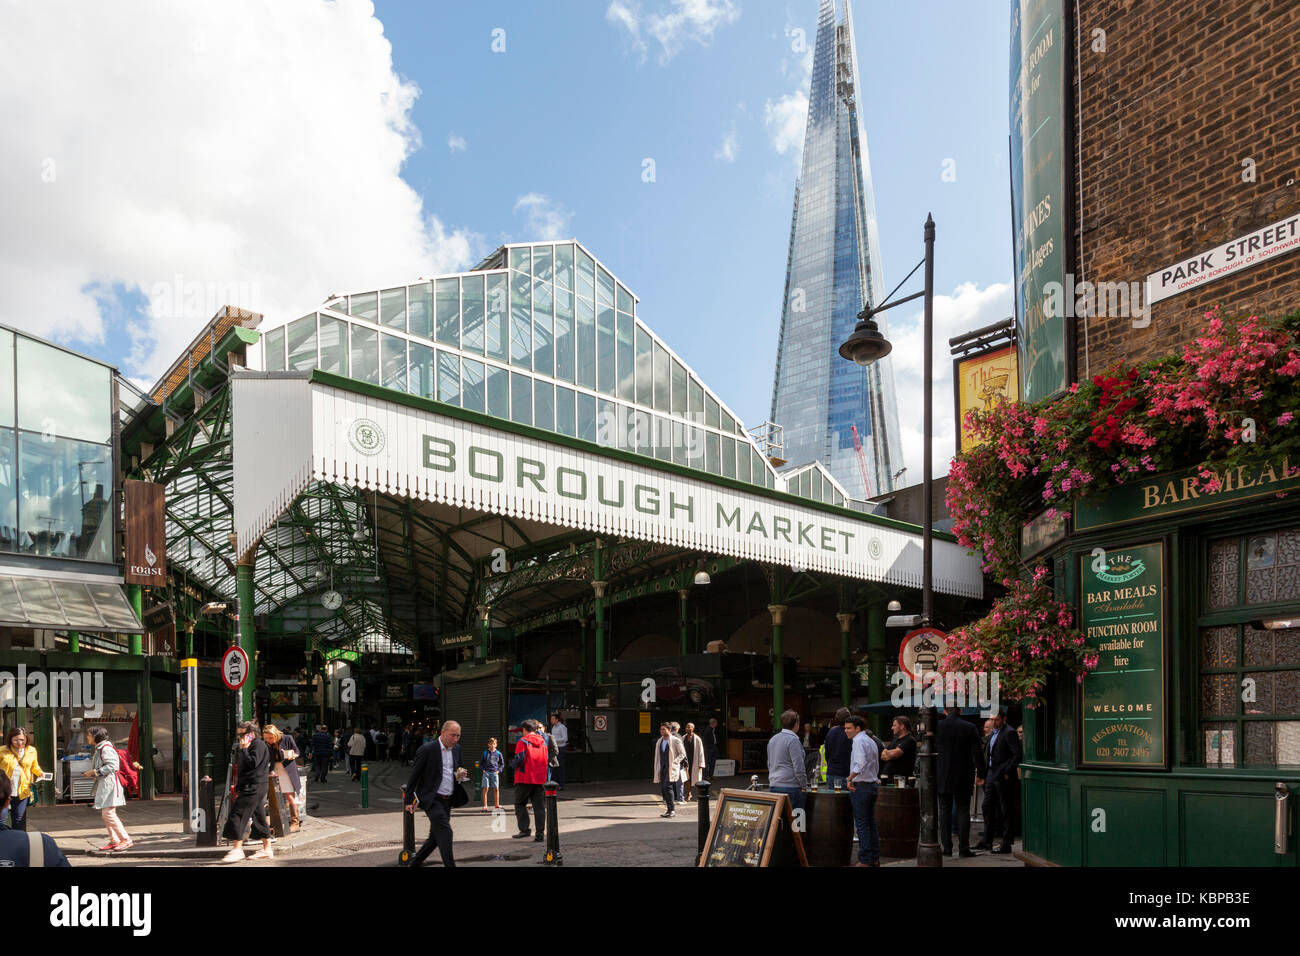 Borough Market, London, England, U.K. - Stock Image